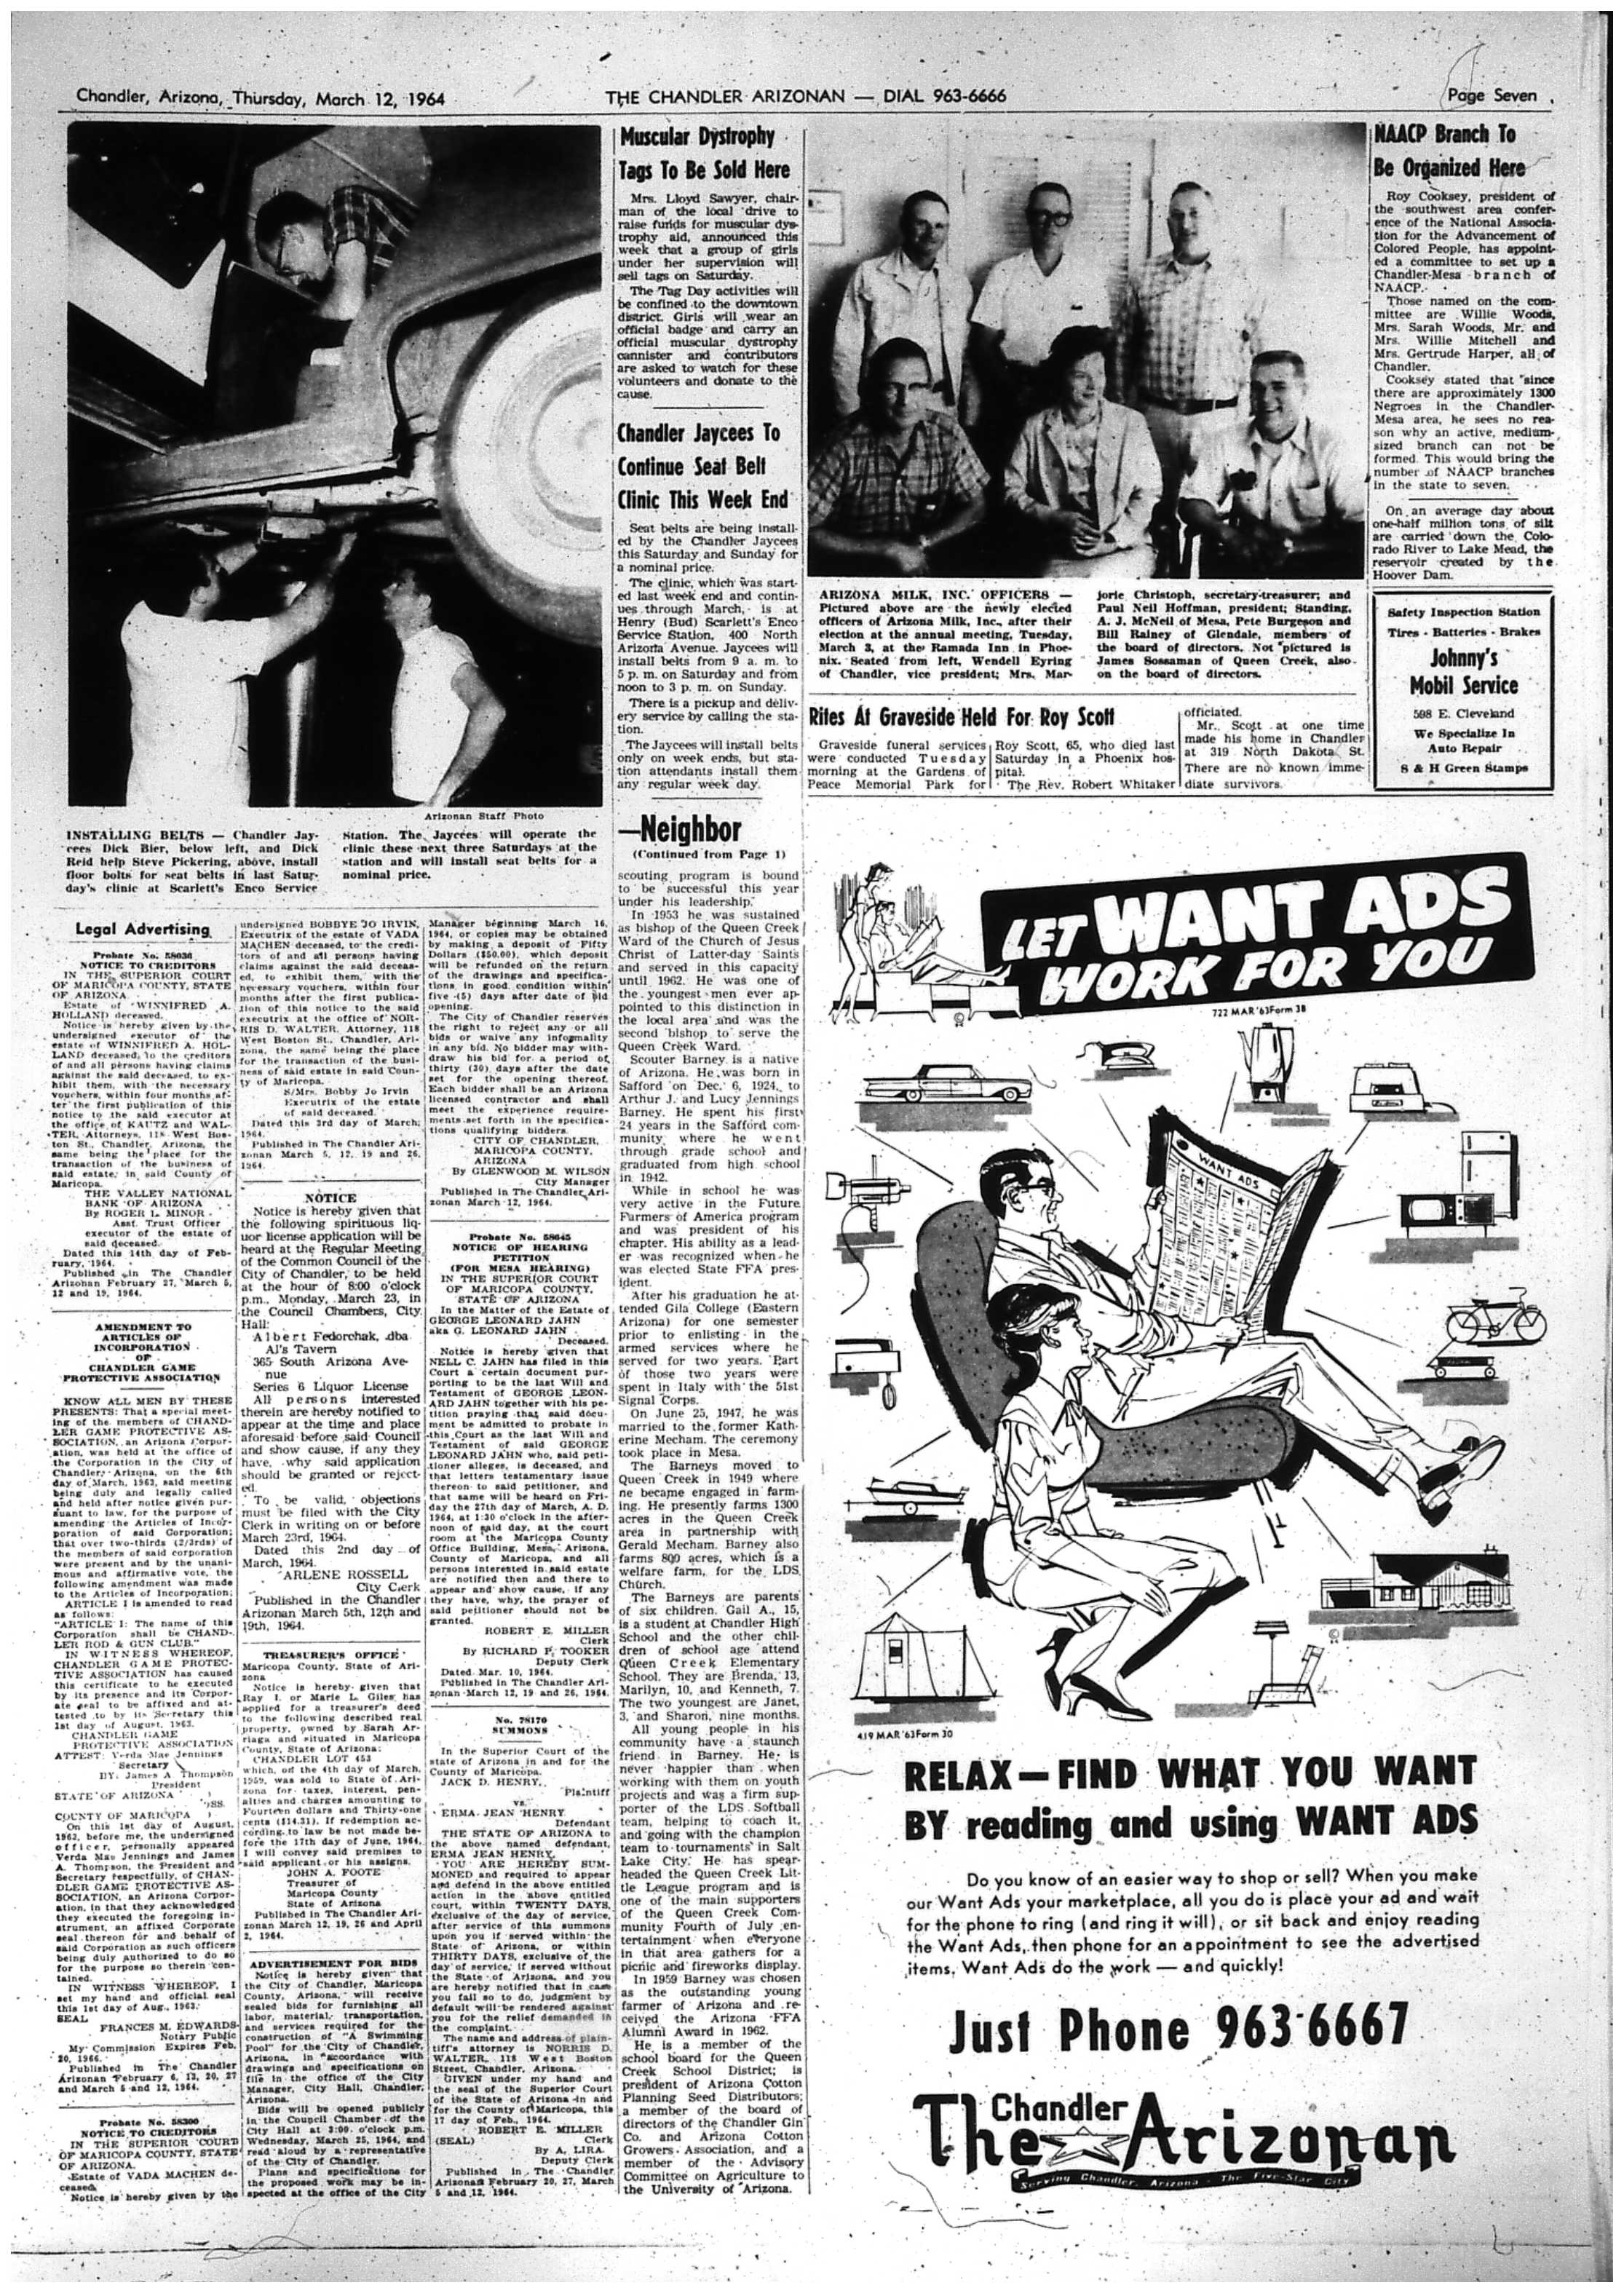 03-12-1964 - Page 7 .jpg